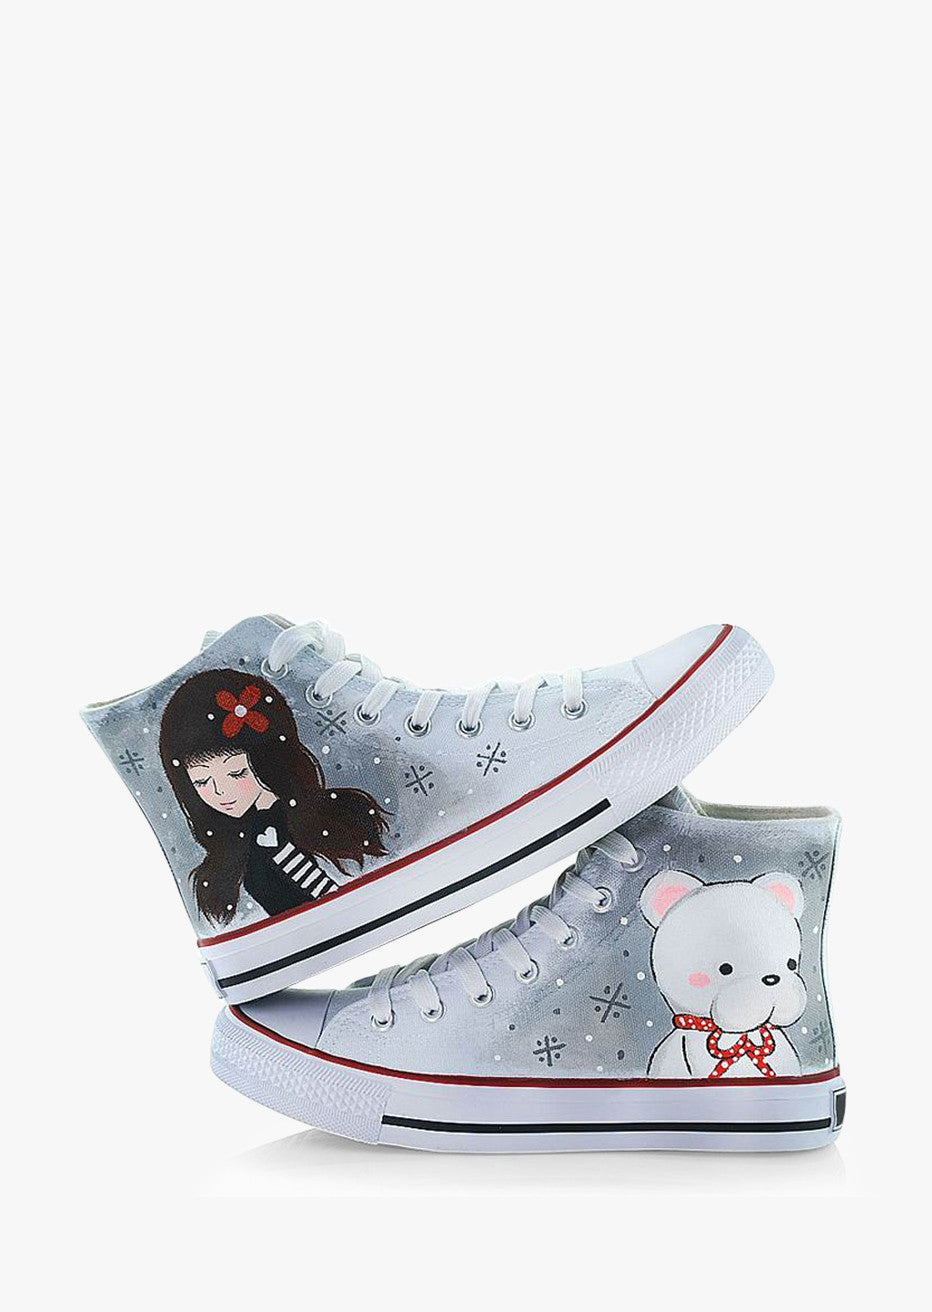 Girl & Bear Painting Sneakers